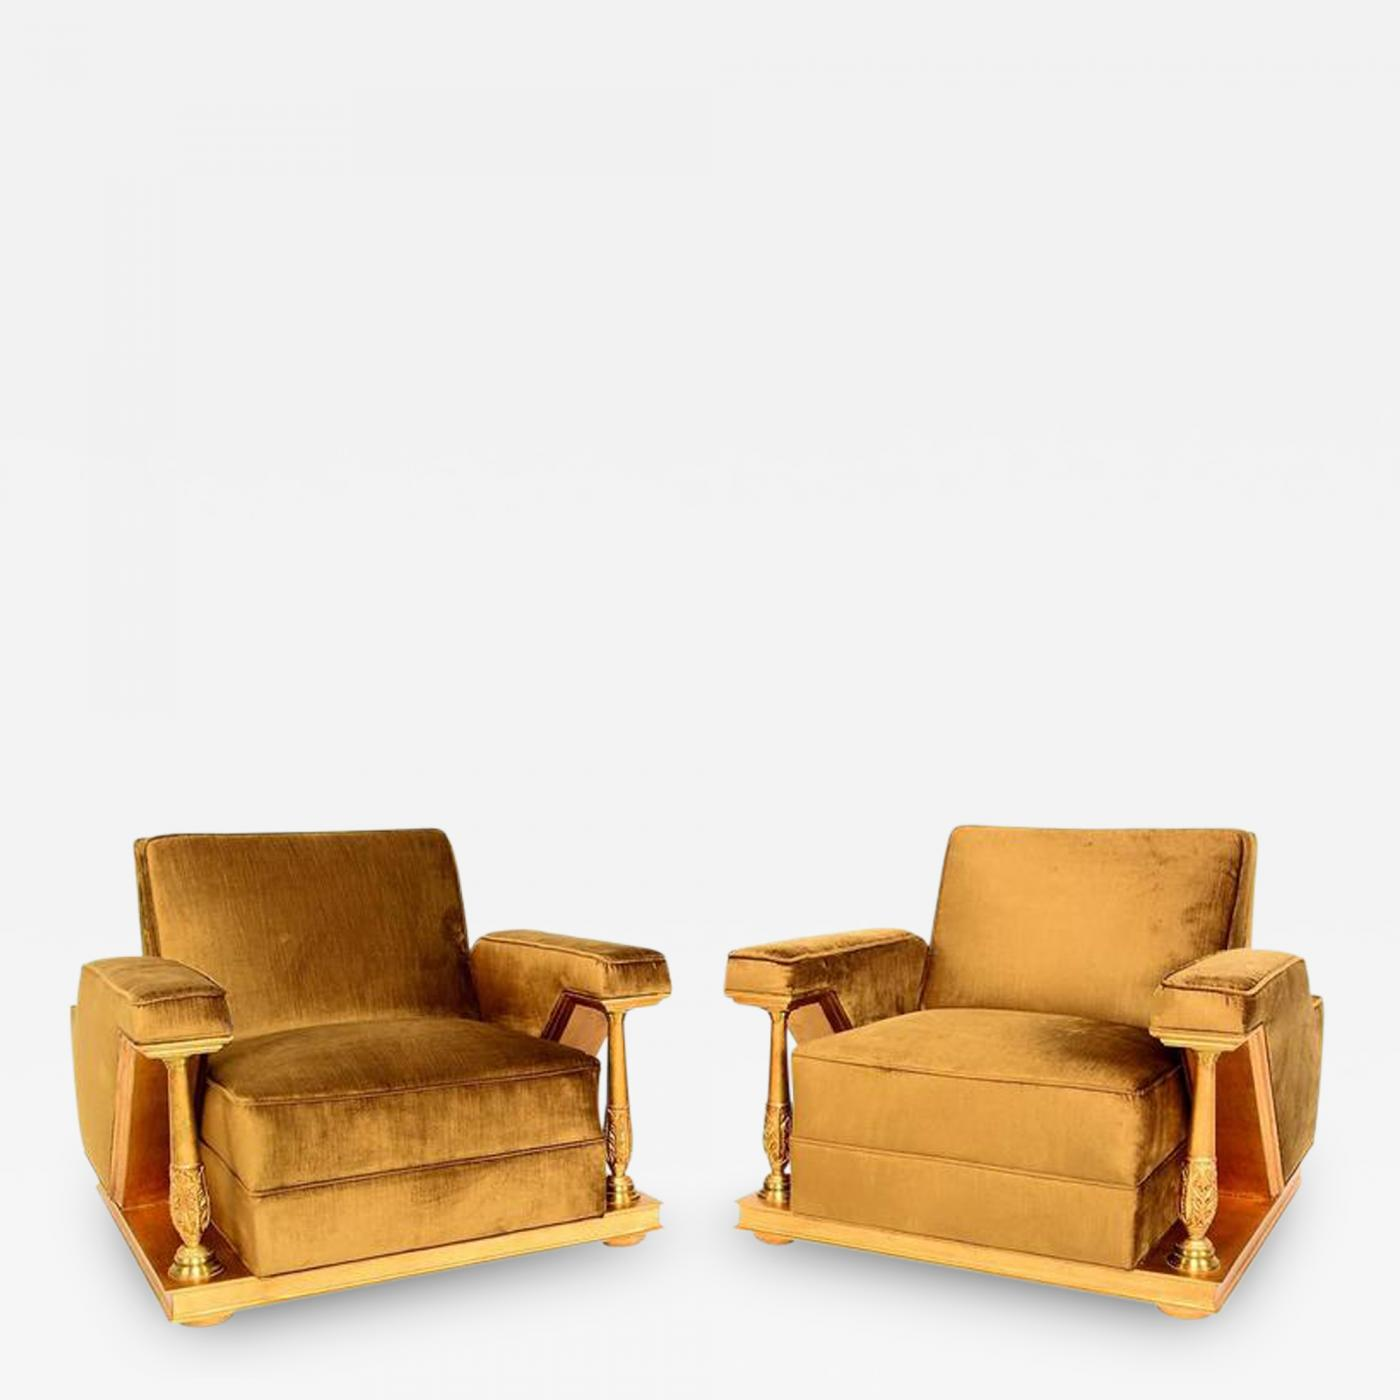 Octavio Vidales Octavio Vidales Armchairs For Muebles Johrvy # Muebles City Club